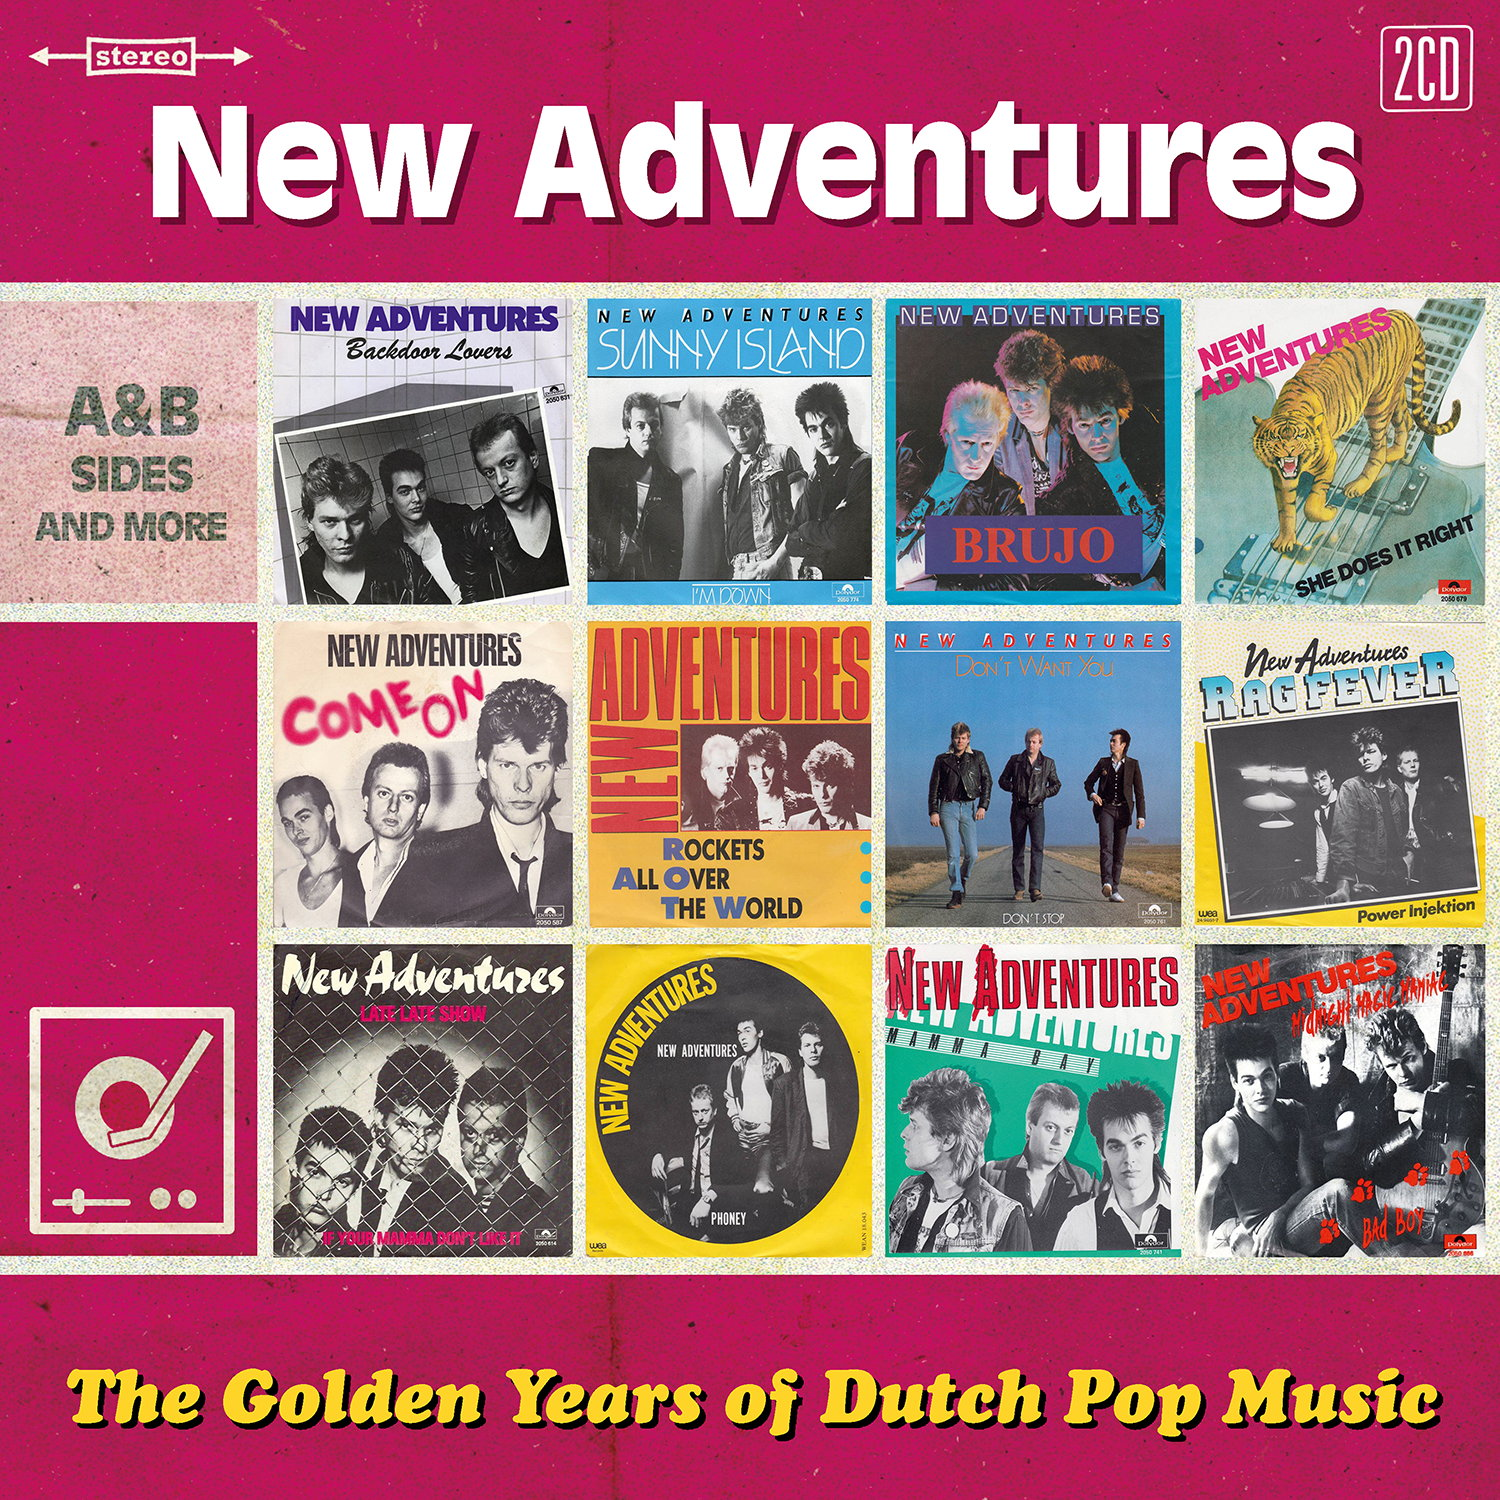 GYODP_New_Adventures_cd.jpg